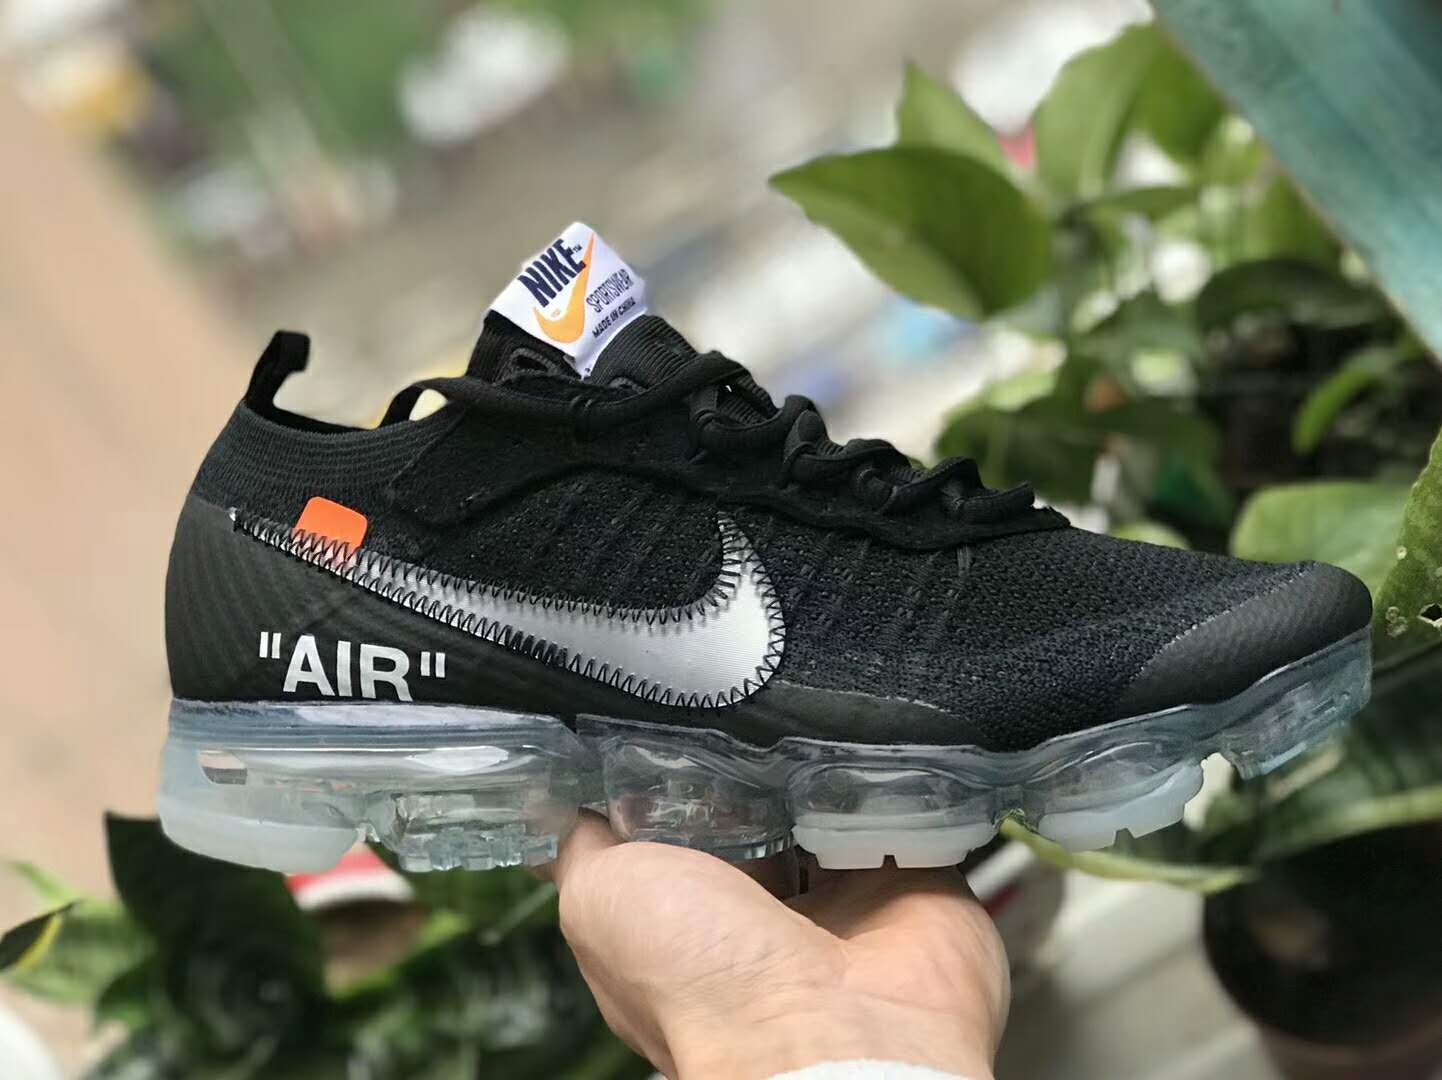 dfff0abde9 Off-White x Nike Air VaporMax 2018 Black AA3831-002 | Off-White x ...